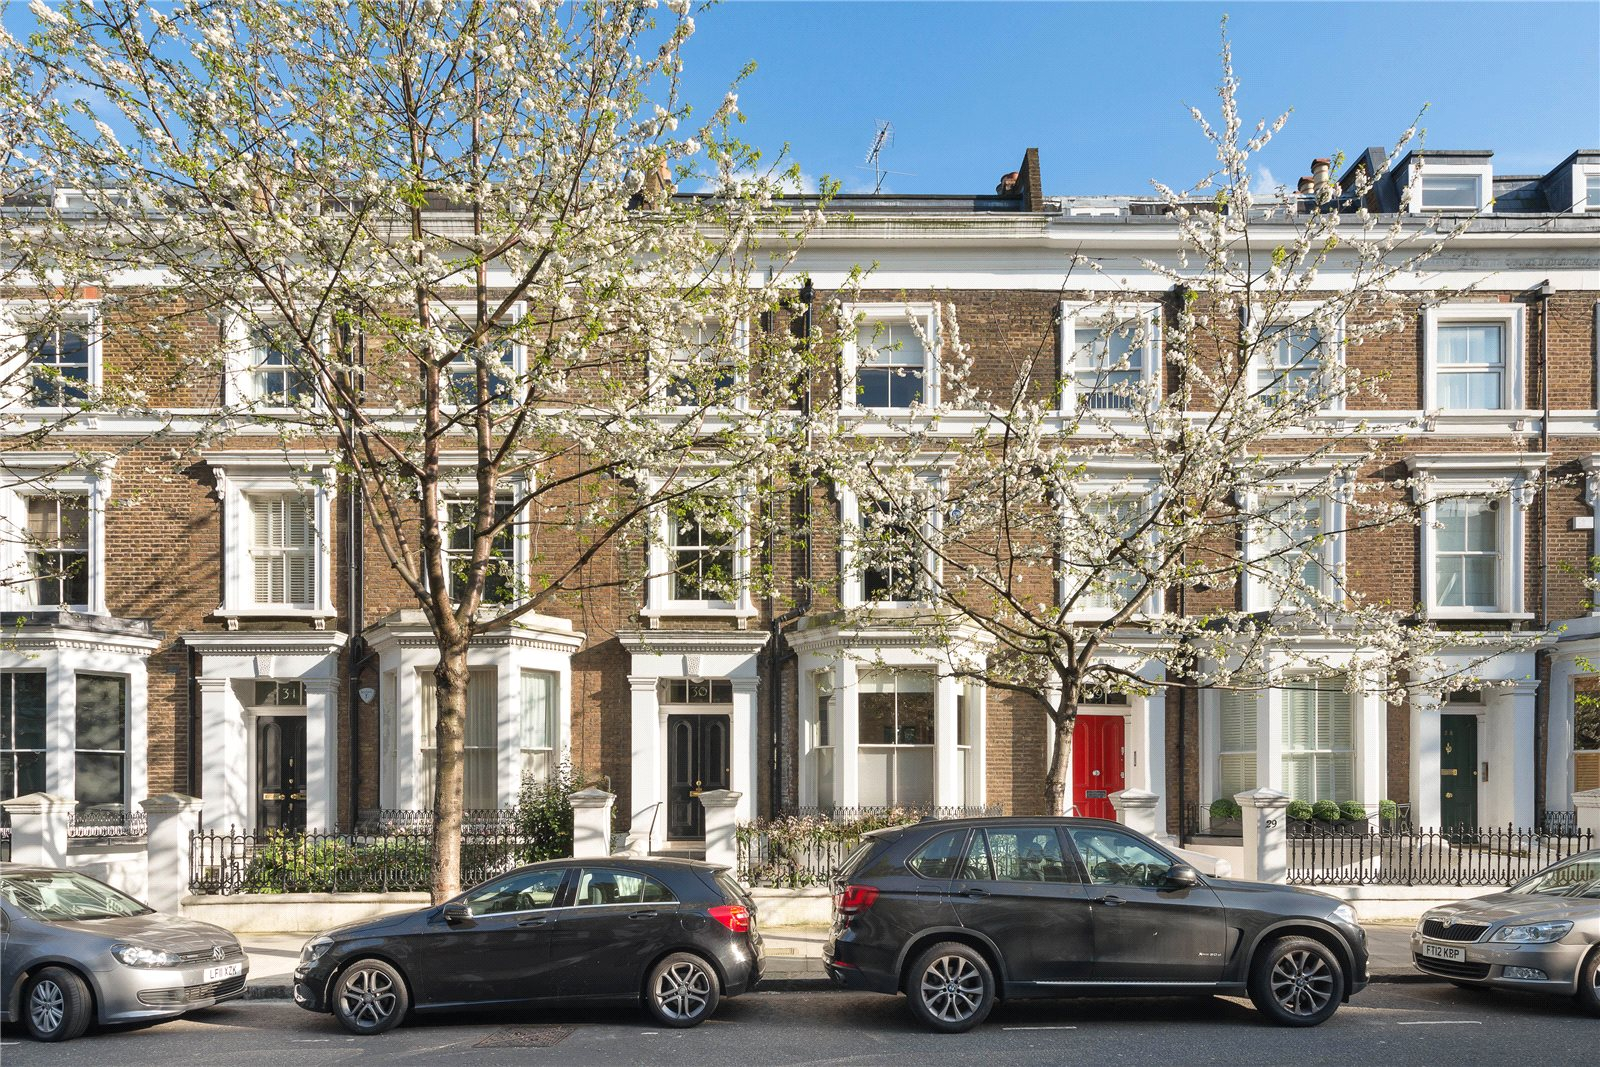 Apartments / Residences for Sale at Upper Addison Gardens, Holland Park, London, W14 Holland Park, London, England